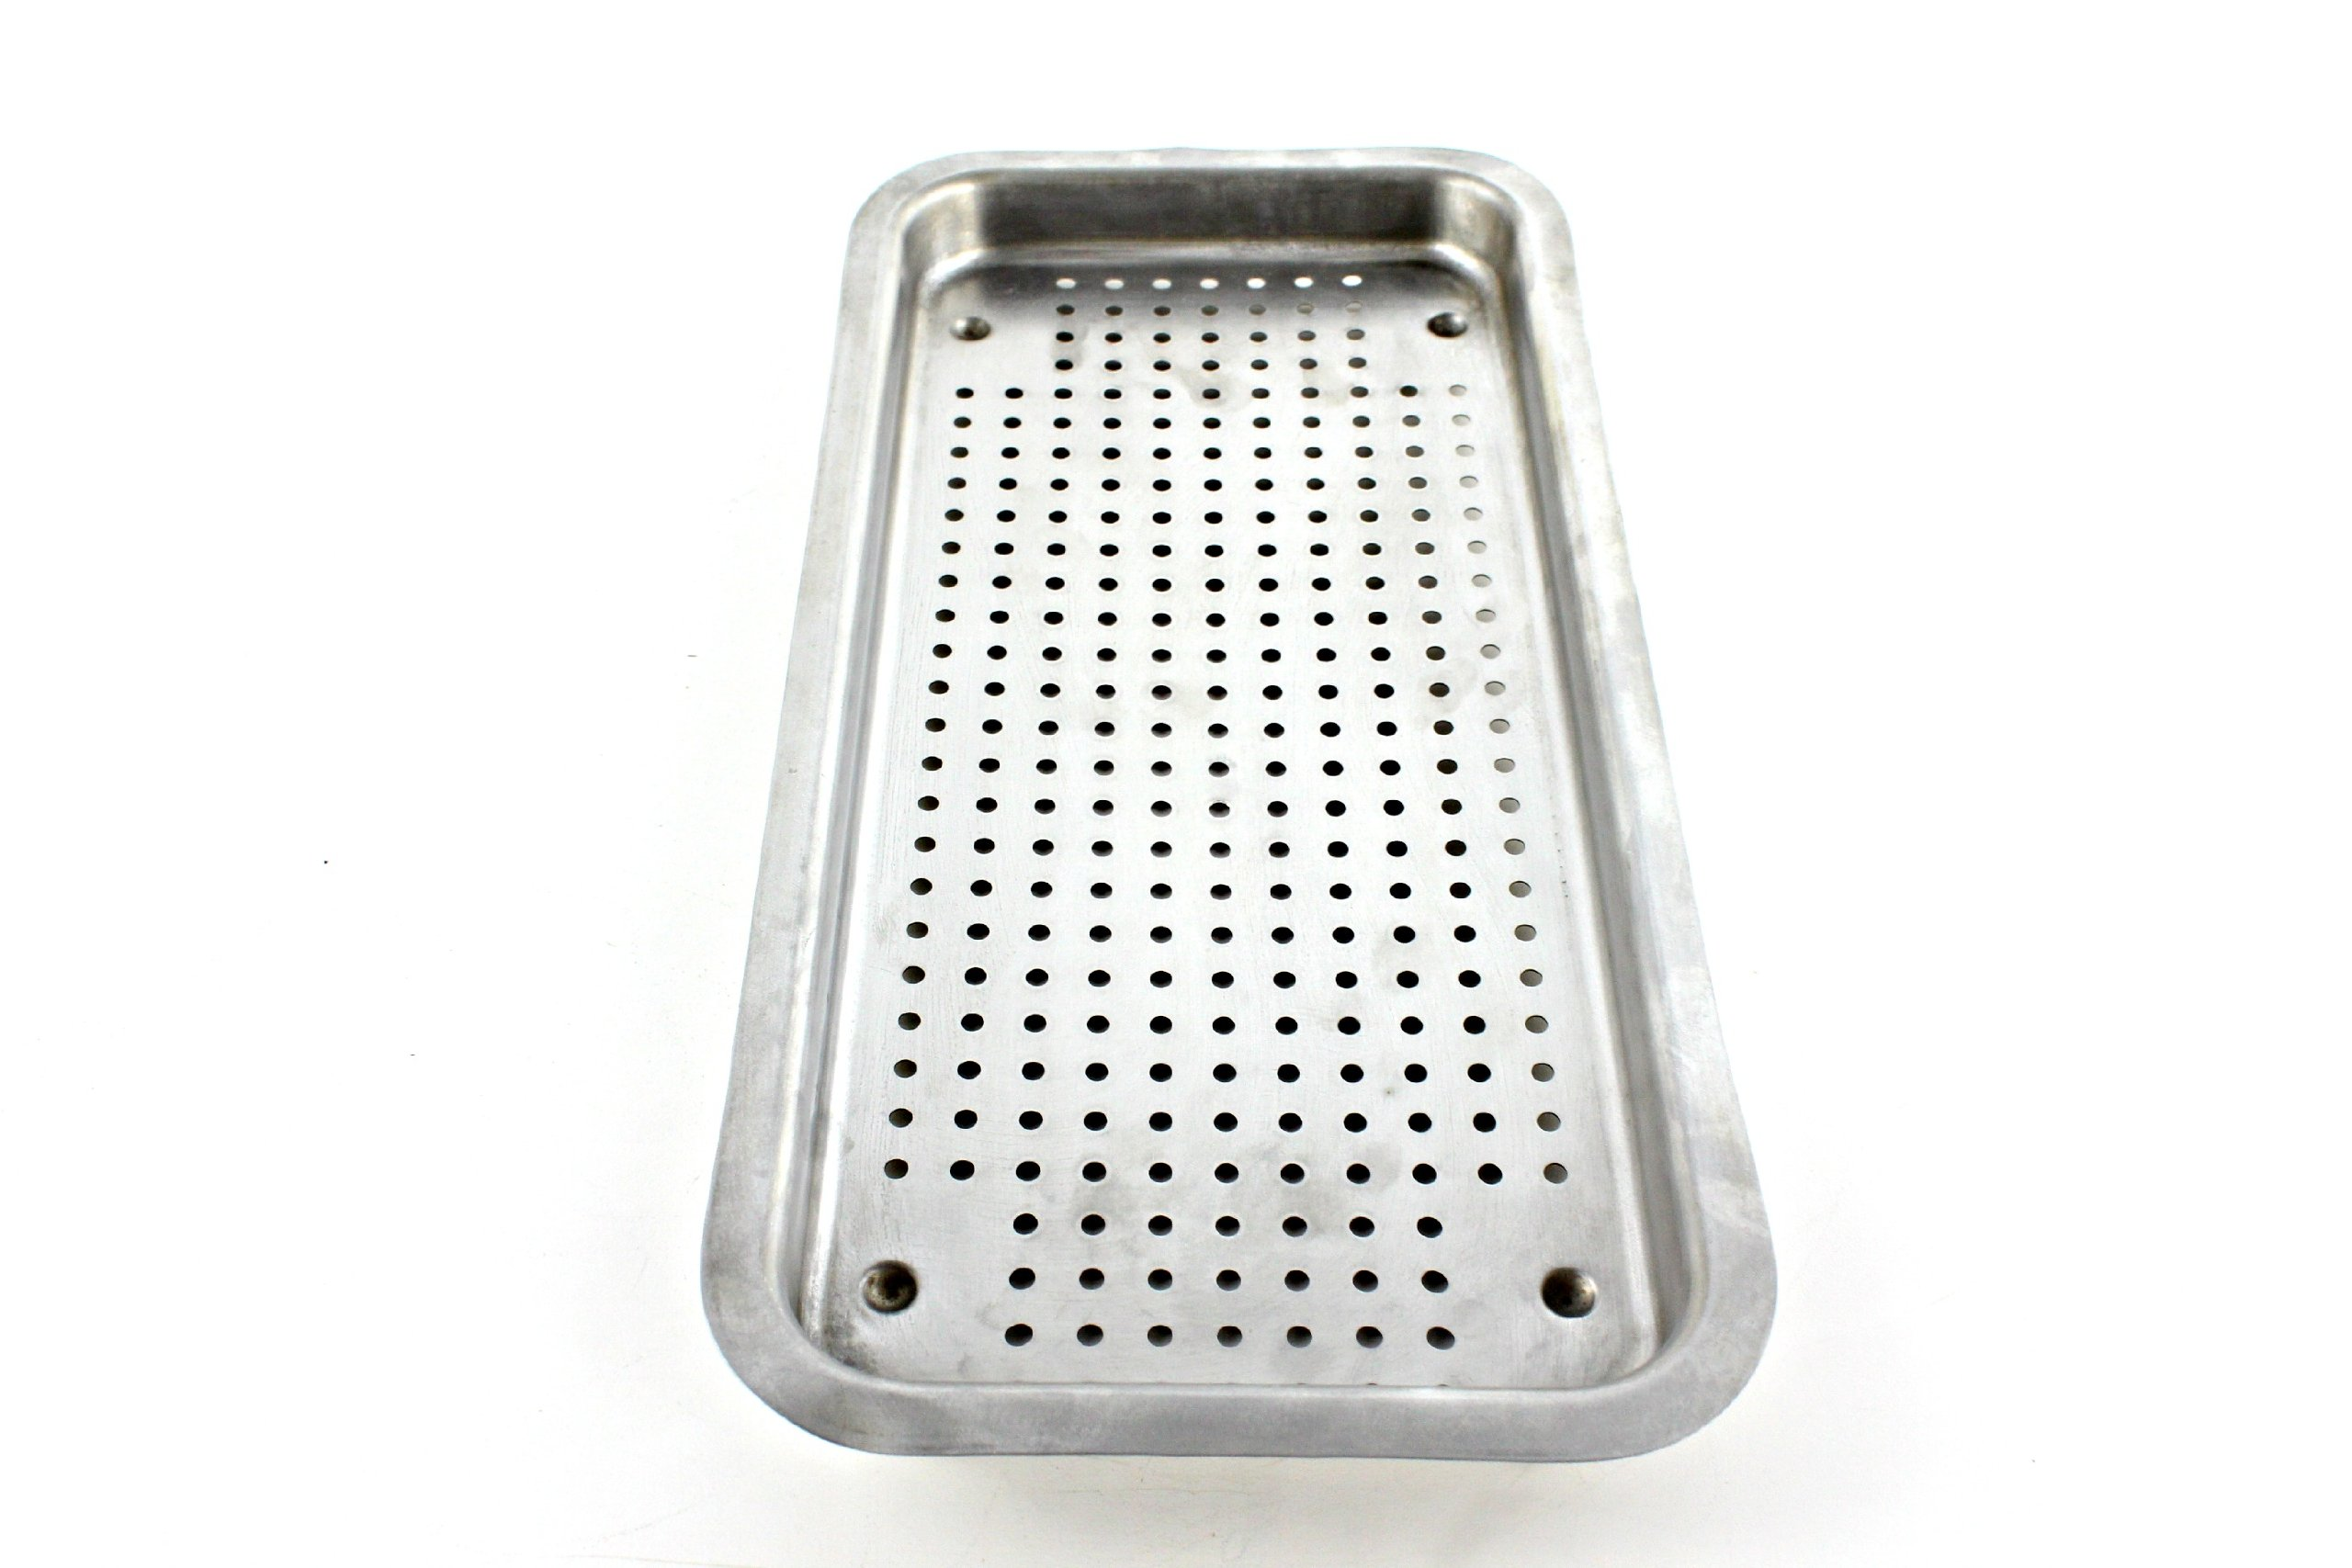 Midmark Ritter M11 Autoclave / Sterilizer Tray - Small 050-4260-00 by Midmark M11 Small tray